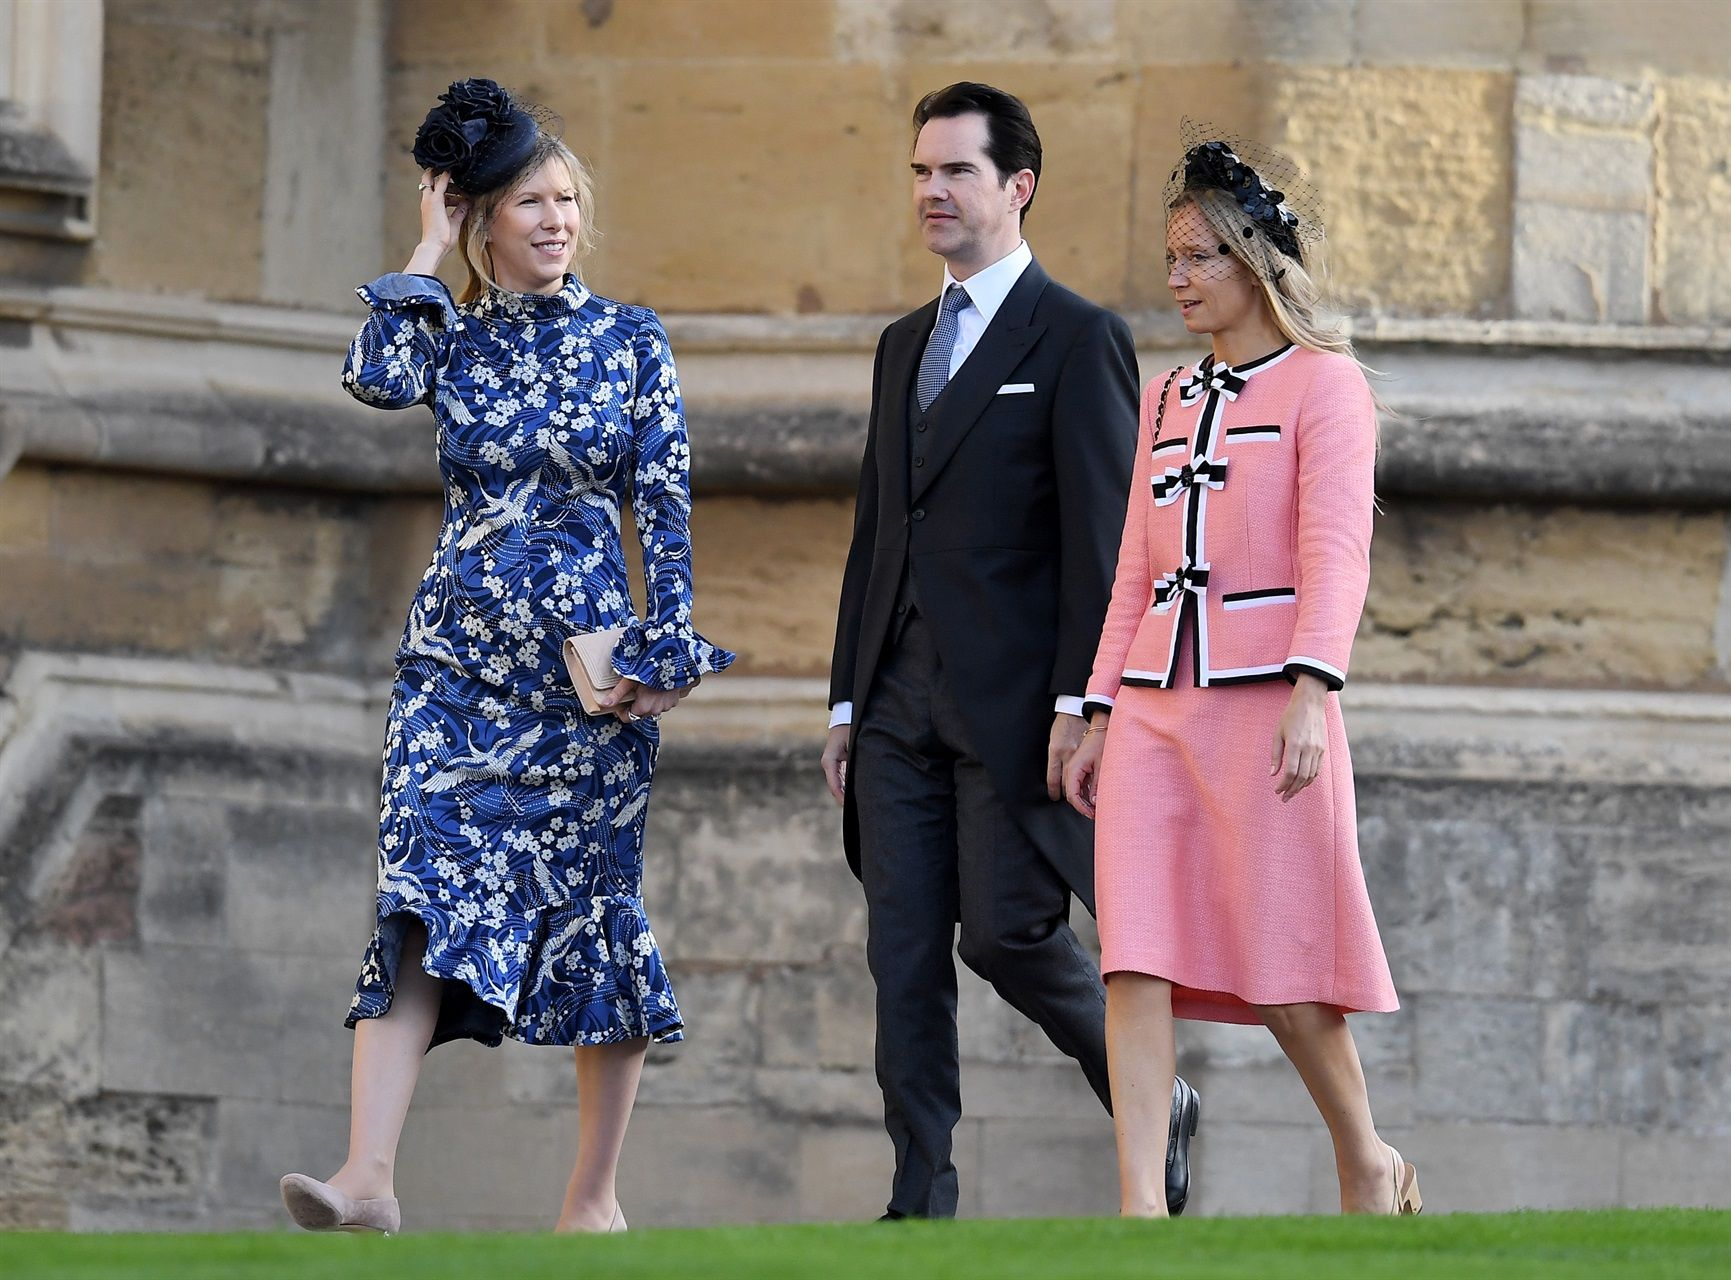 Jimmy Carr Karoline Copping Jimmy Carr Jimmy Prince Harry The couple were telling friends why they have so far not had children. jimmy carr karoline copping jimmy